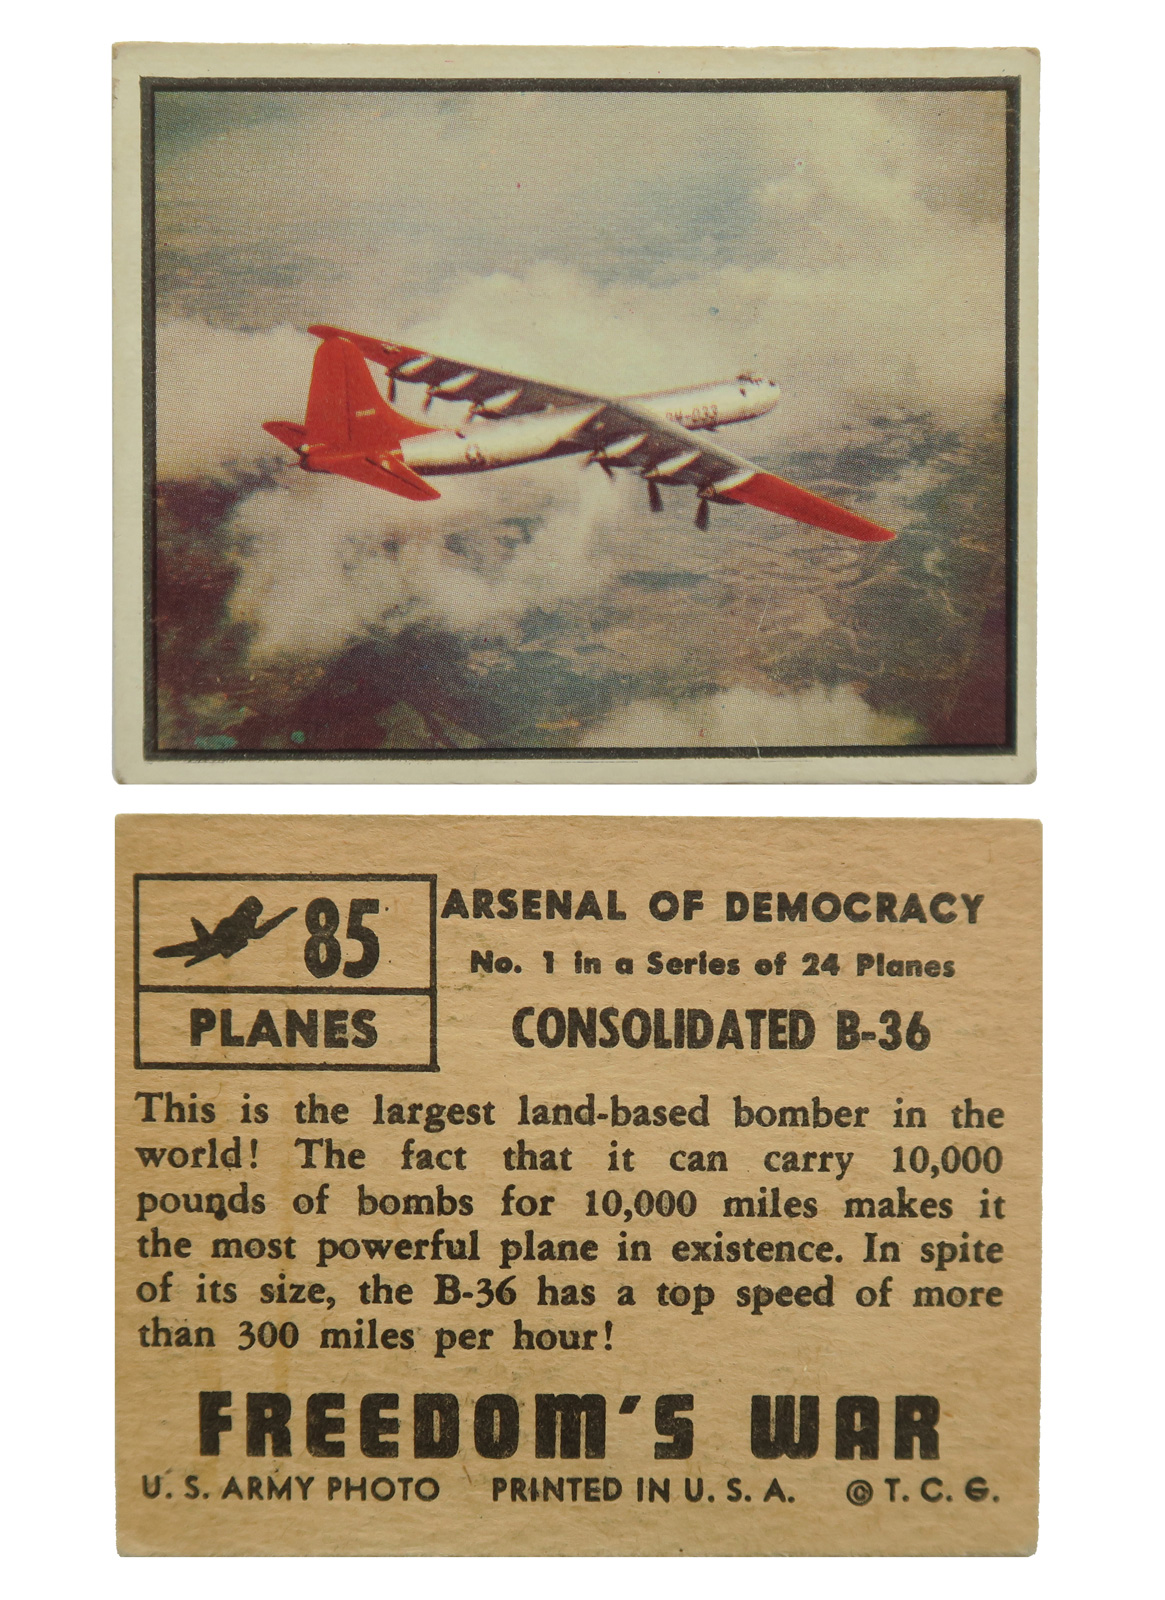 Consolidated B-36 #85  Series: Freedom's War - Arsenal of Democracy Manufacture: Topps Chewing Gum Card Dimensions: 2.562 × 2.062 inches USA -1950